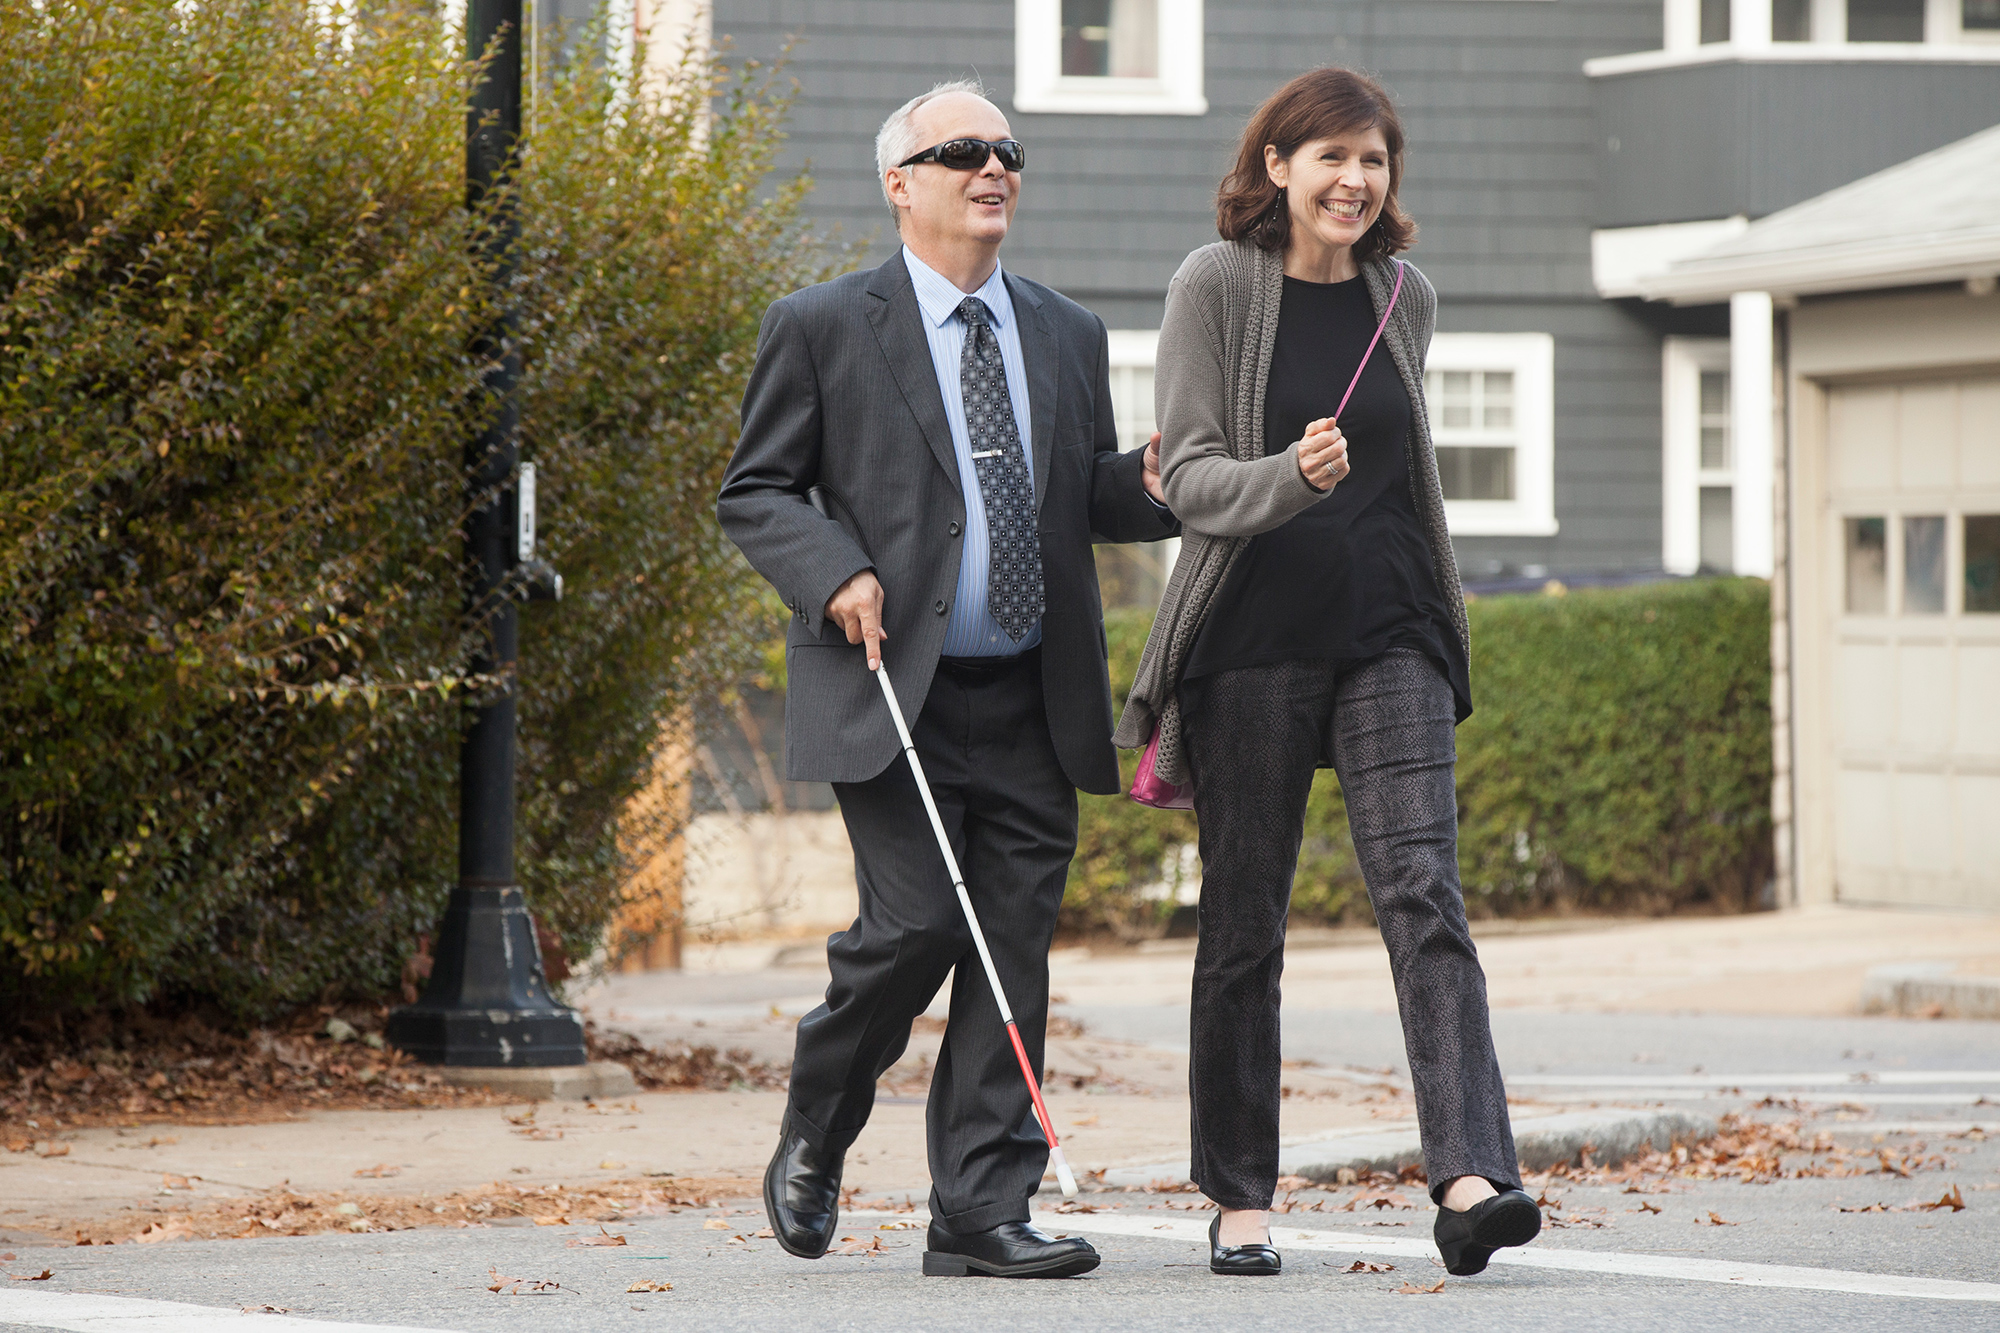 dating a visually impaired person The american council of the blind strives to increase the independence, security,  equality of opportunity, and quality of life for all blind and visually impaired.